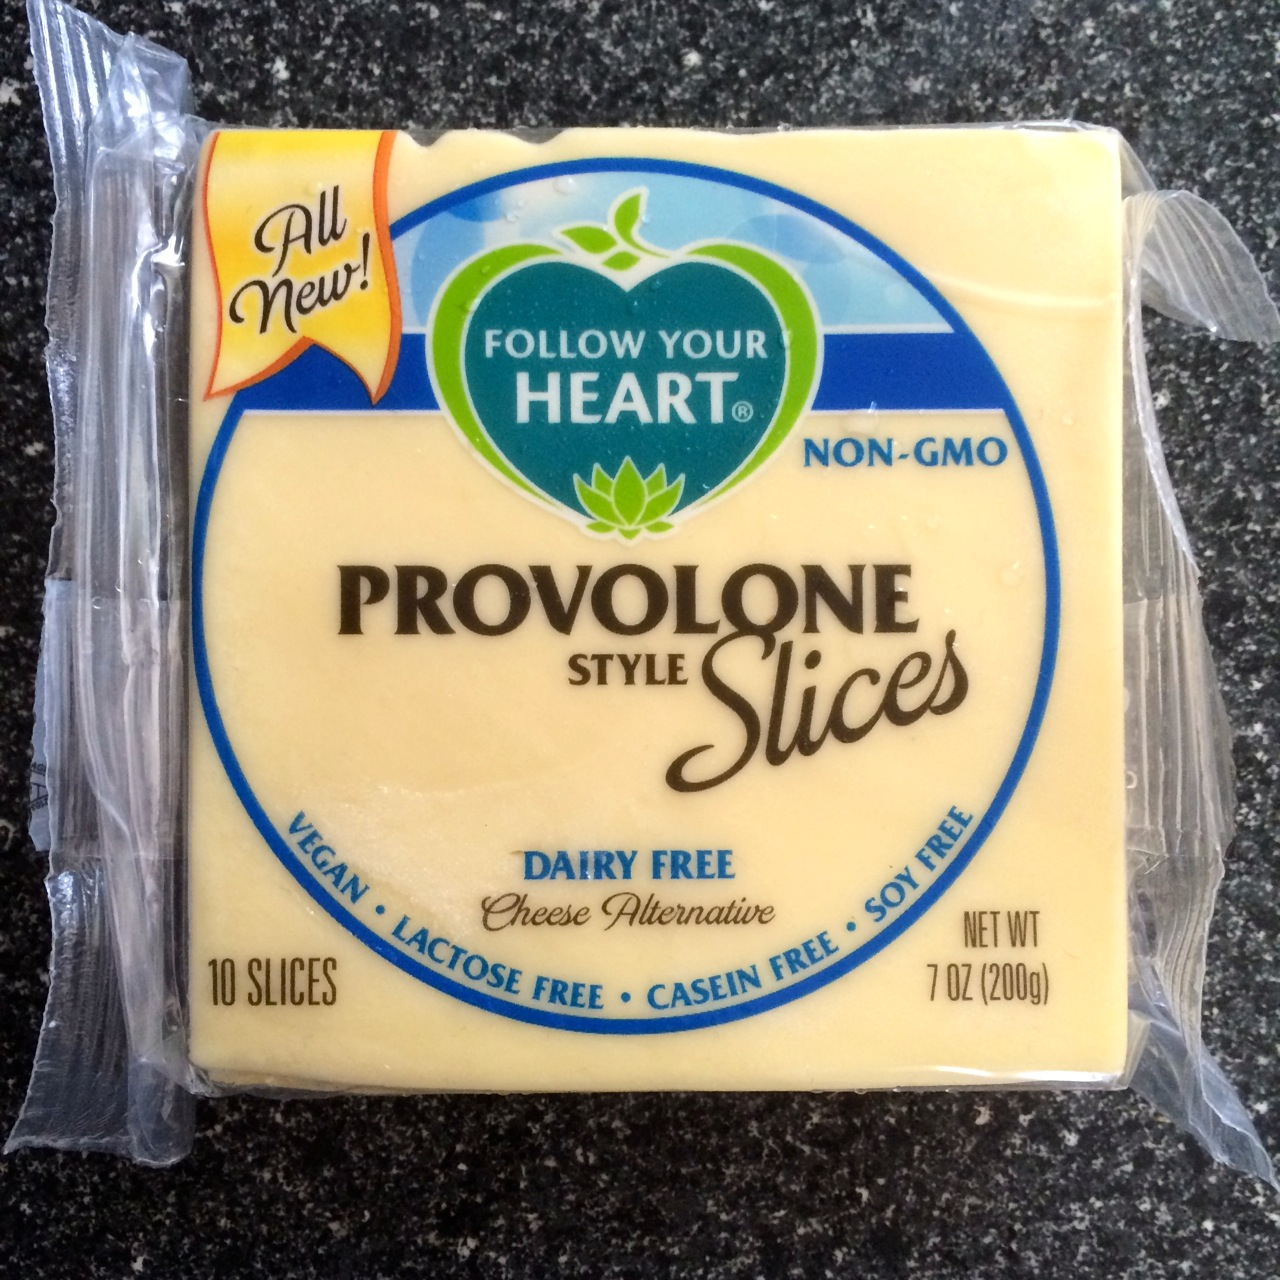 http://i1.wp.com/fatgayvegan.com/wp-content/uploads/2015/06/follow-your-heart-vegan-provolone-style-slices.jpg?fit=1280%2C1280